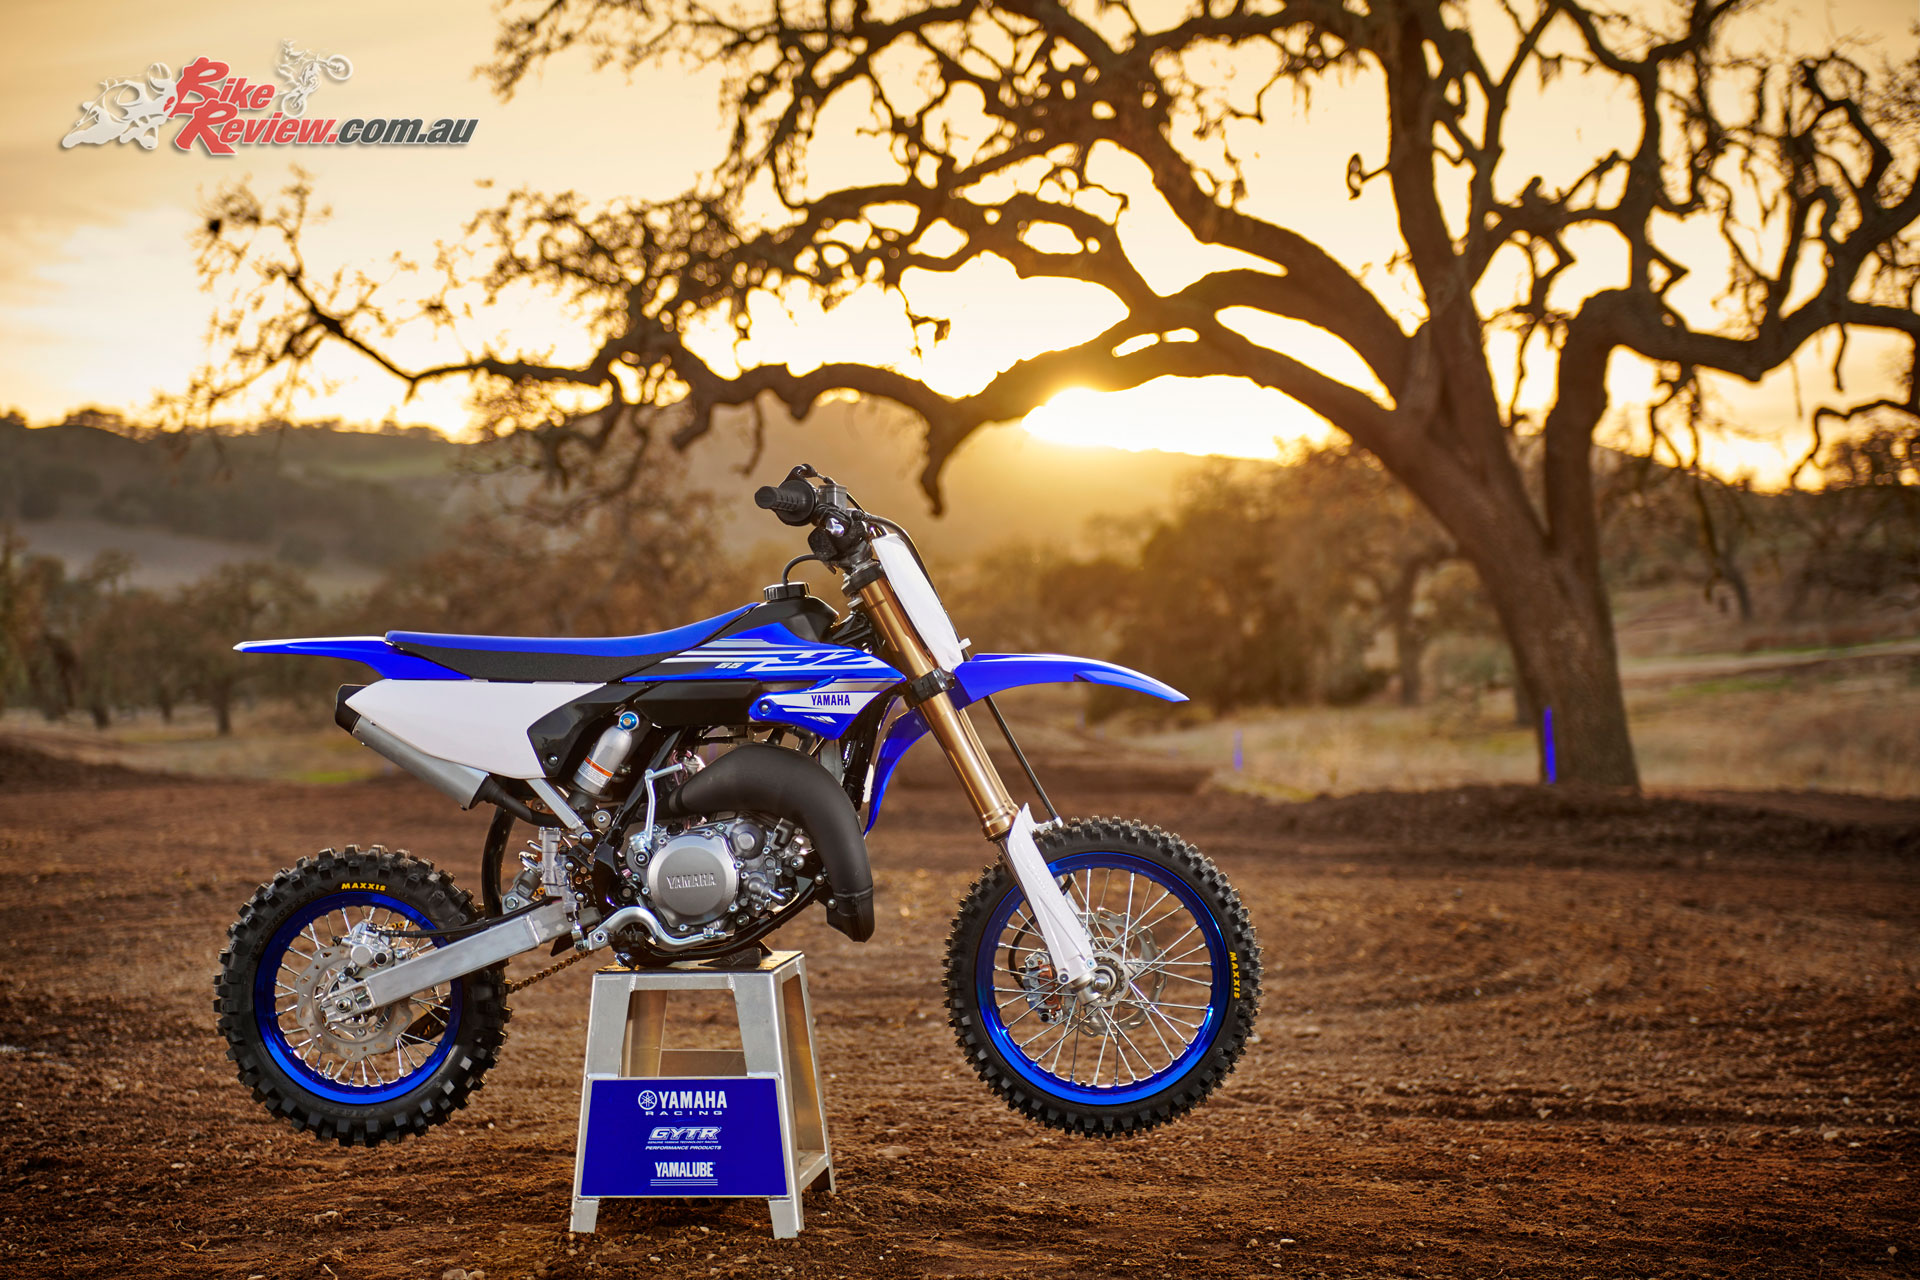 New Model 2018 Yamaha Yz65 Bike Review